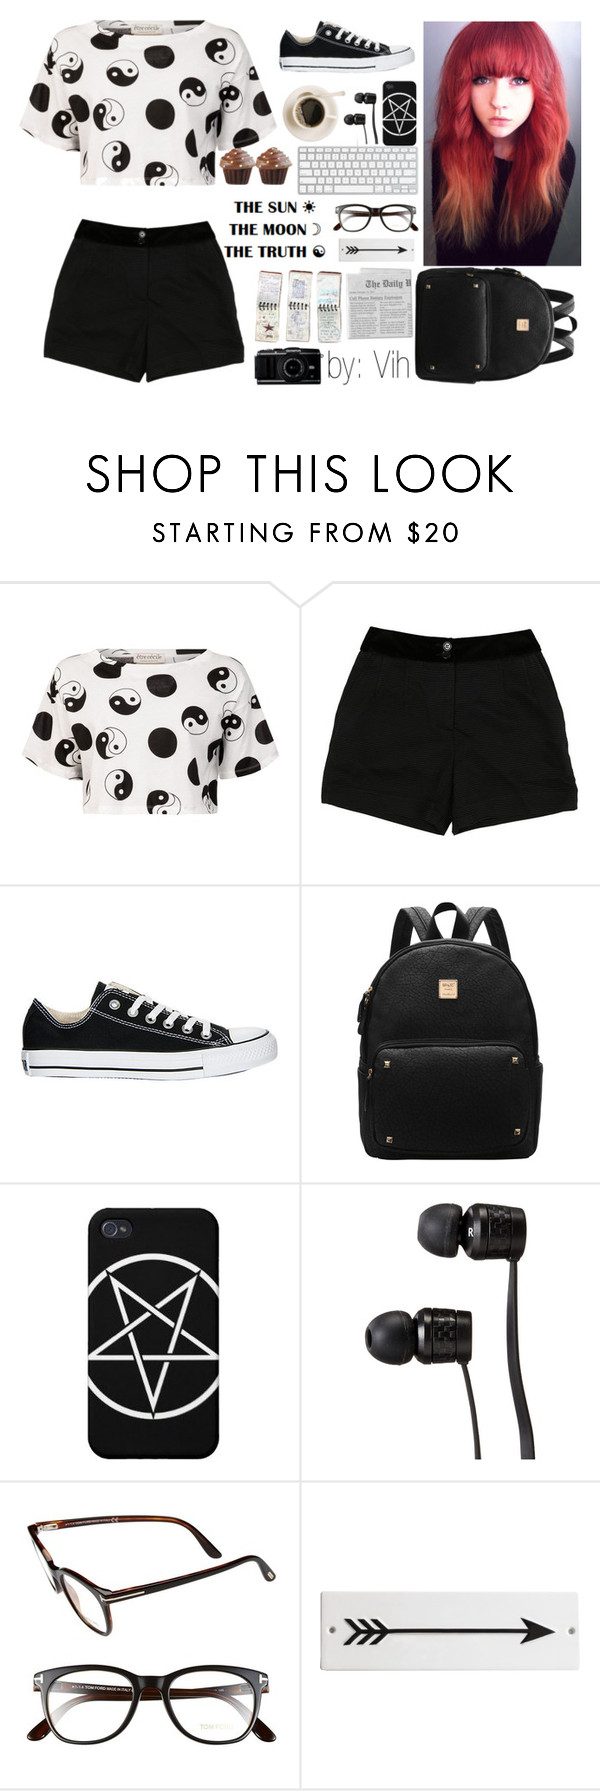 """""""the truth"""" by unicorniocg ❤ liked on Polyvore featuring Être Cécile, D&G, Converse, Vans, Tom Ford, Rosanna and GUESS"""